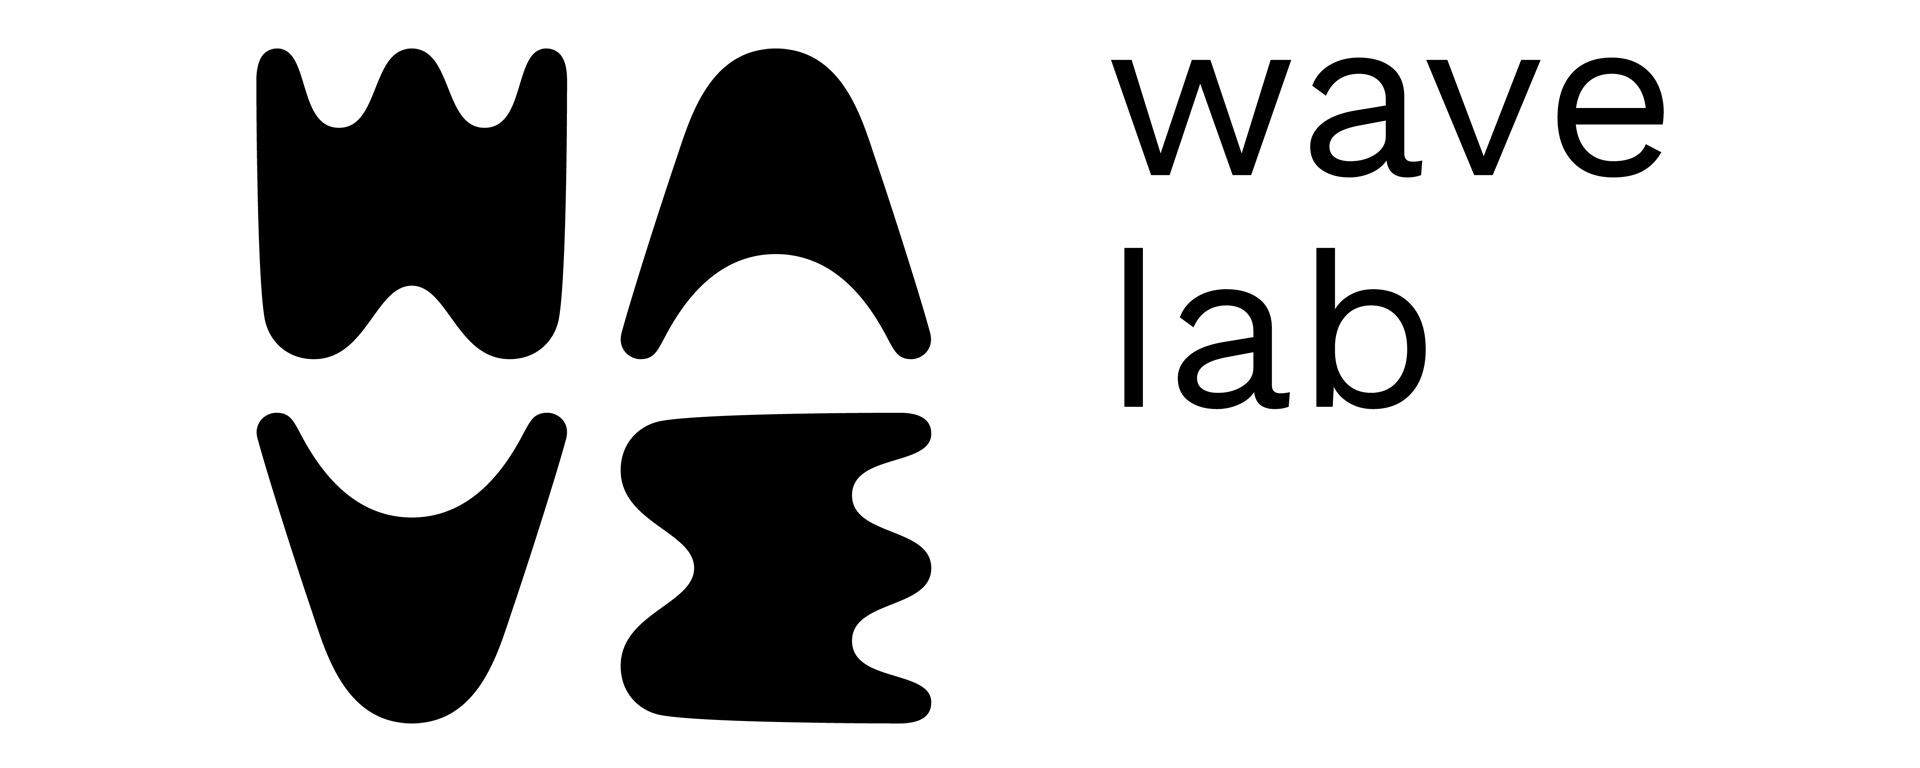 New! The »Wavelab« Innovation Lab at the HMTM